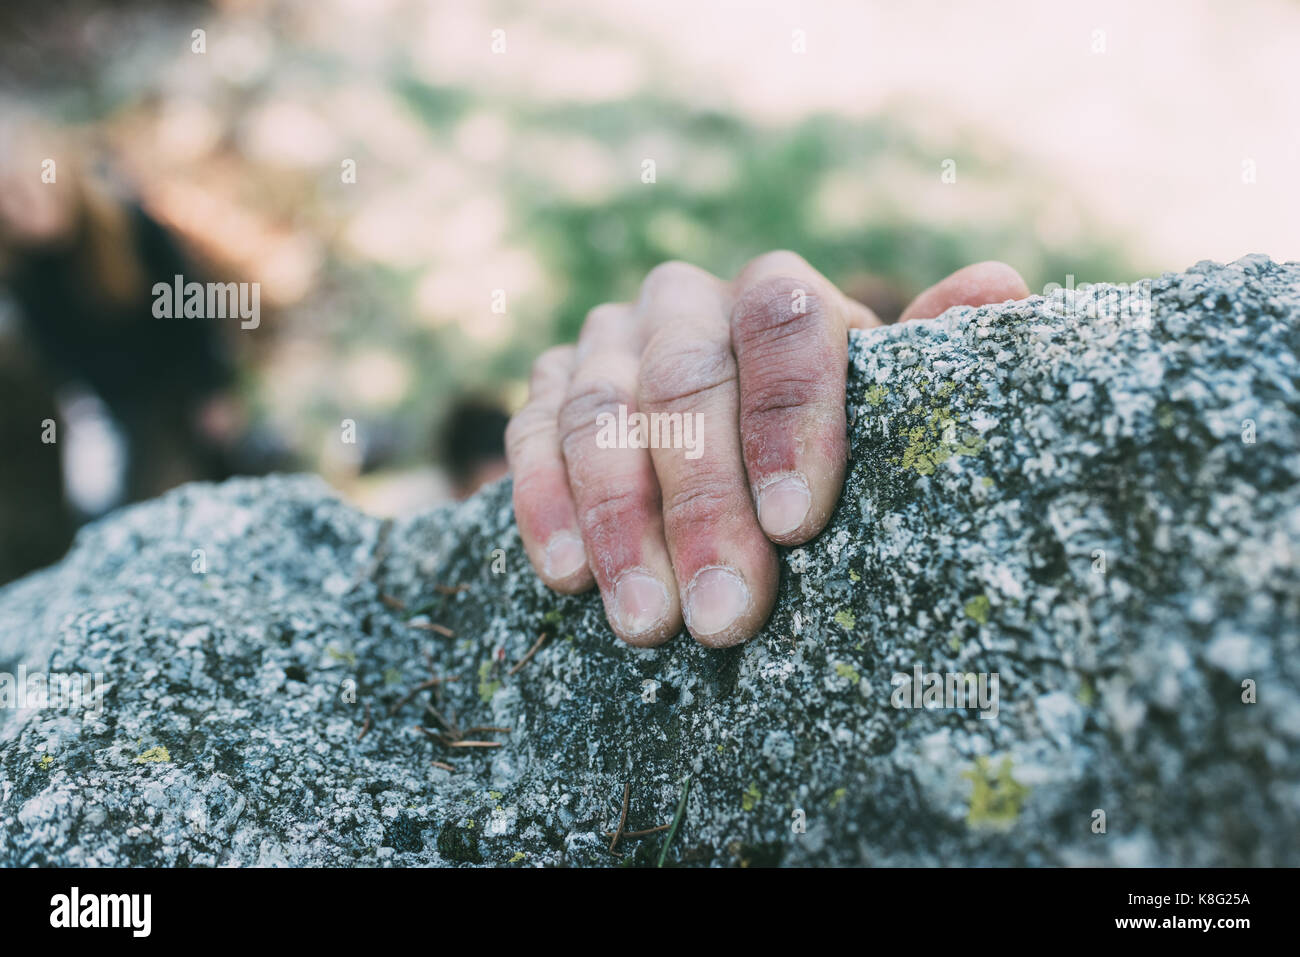 Hand of male boulderer gripping boulder edge, Lombardy, Italy - Stock Image